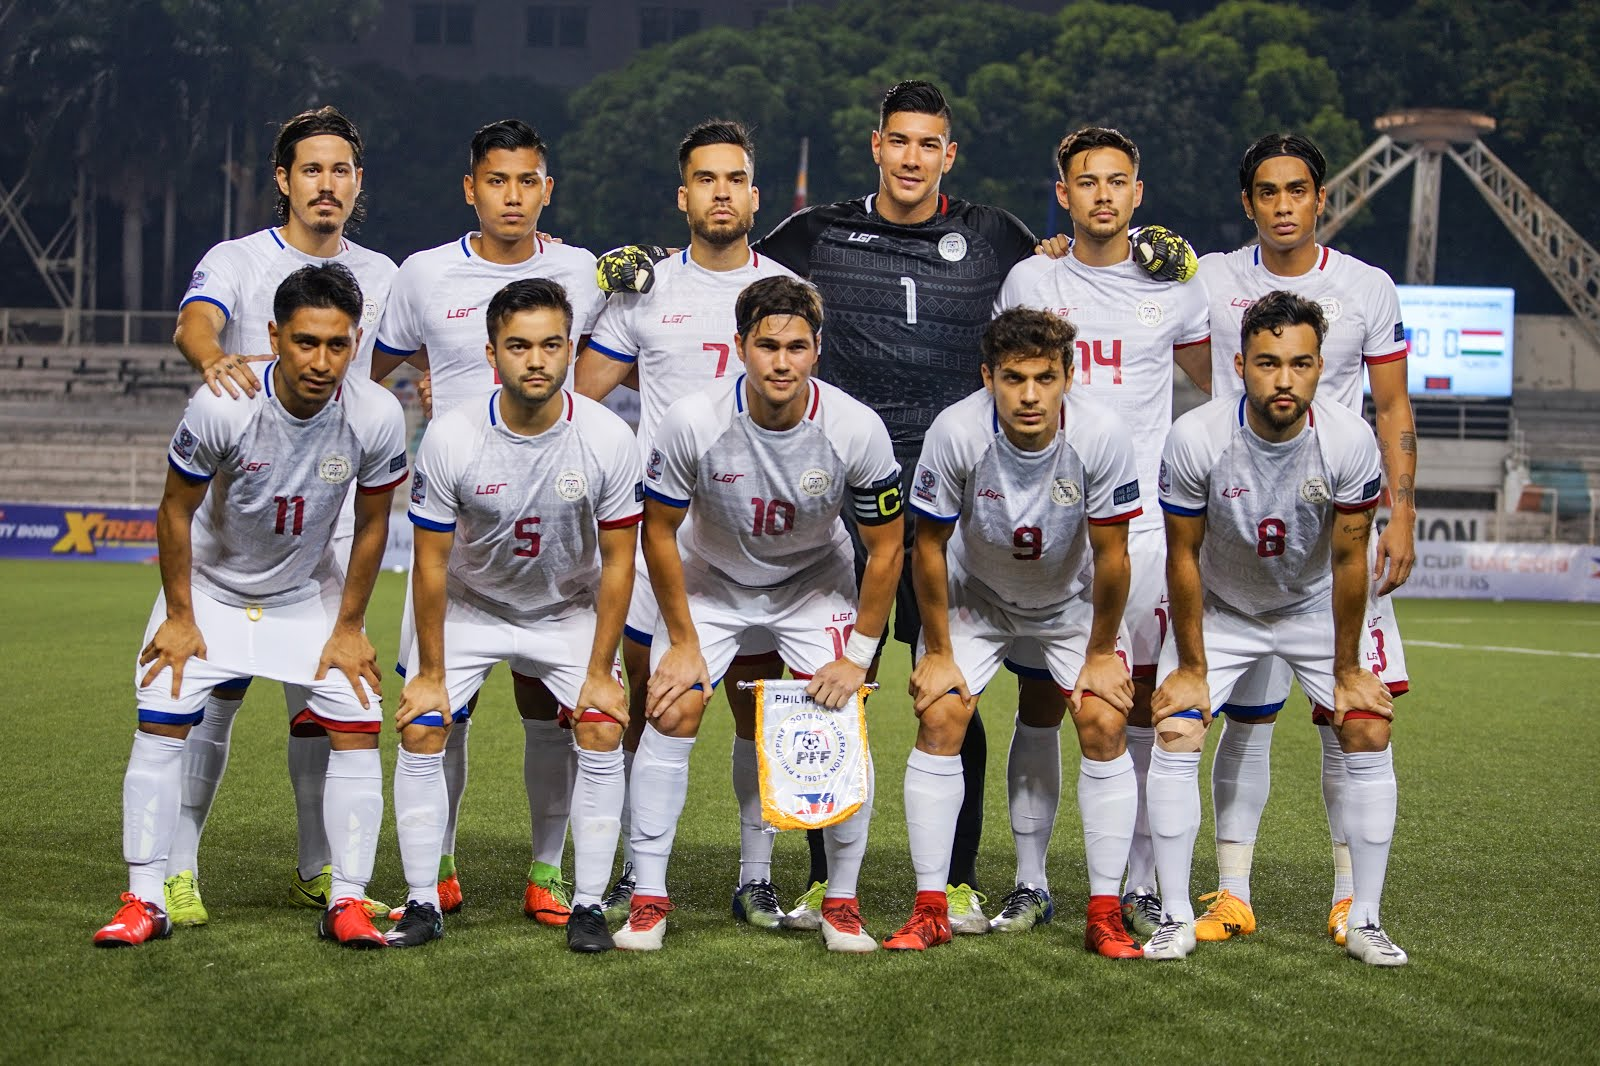 Azkals draw Korea, China, Kyrgyz Republic in 2019 AFC Asian Cup